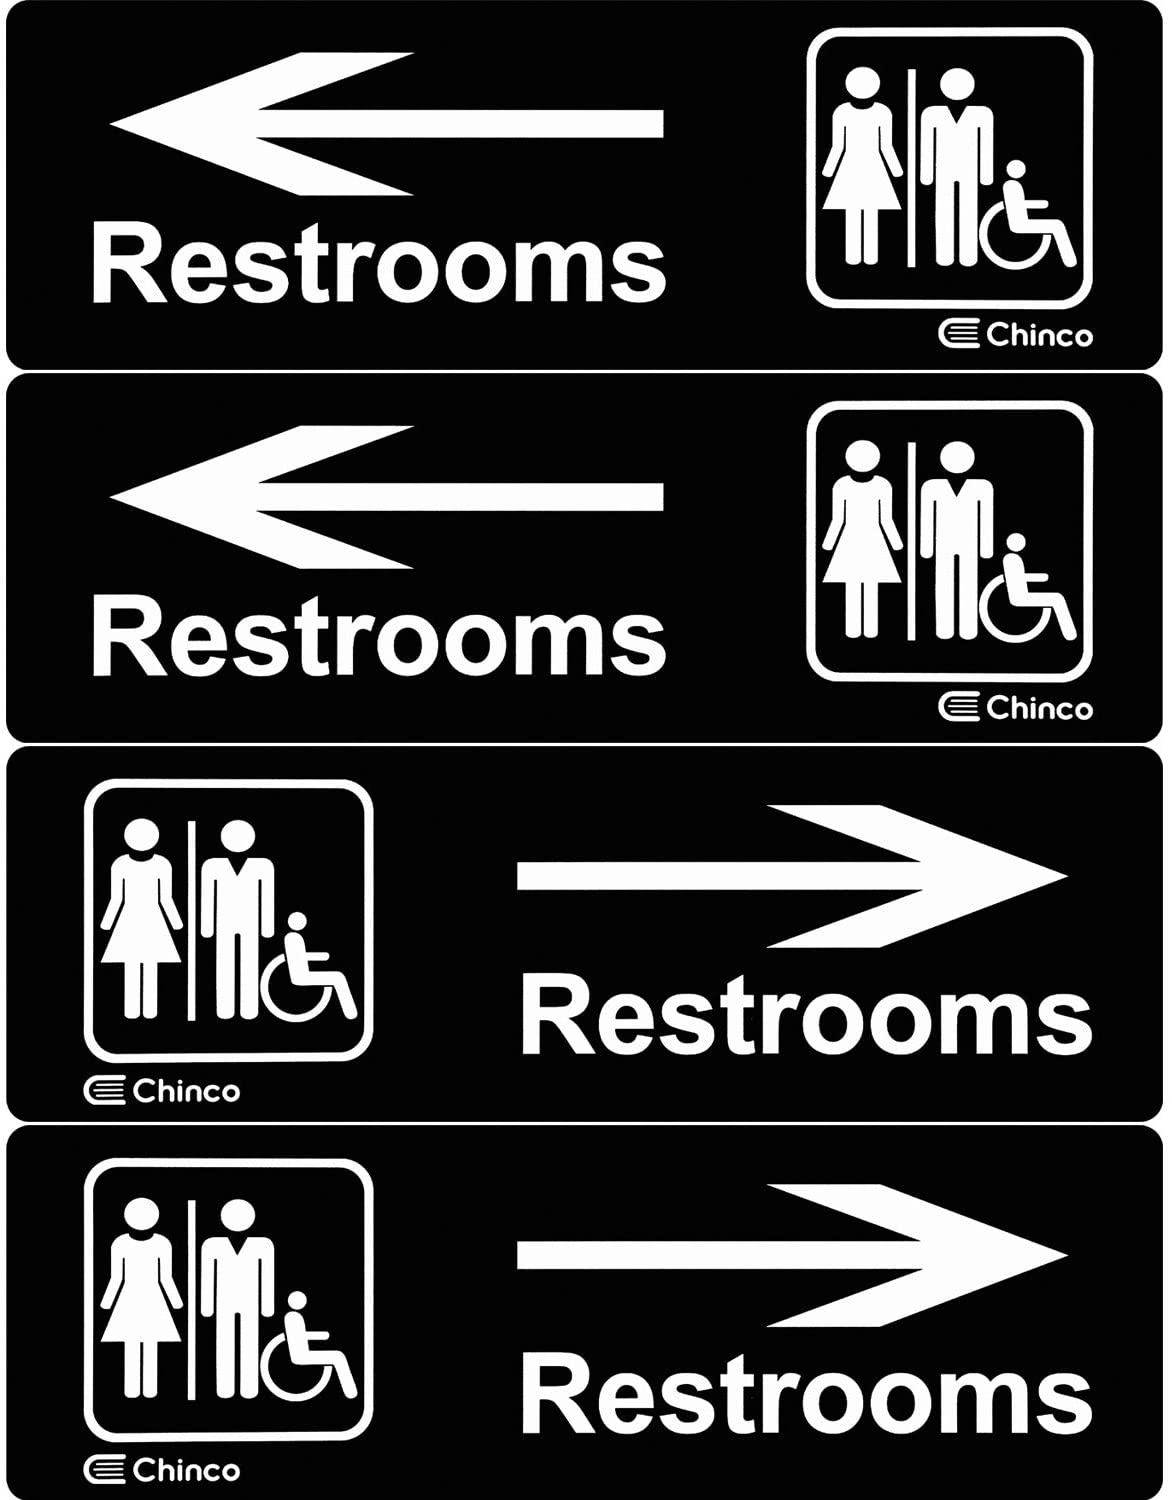 4 Pieces Acrylic Plastic Restrooms Sign Restroom Directional Sign Men Women Wheelchair Restroom Sign with Arrow for Office Restaurants Hotels Supermarket Supplies, 9 by 3 Inch (Left and Right Arrow)